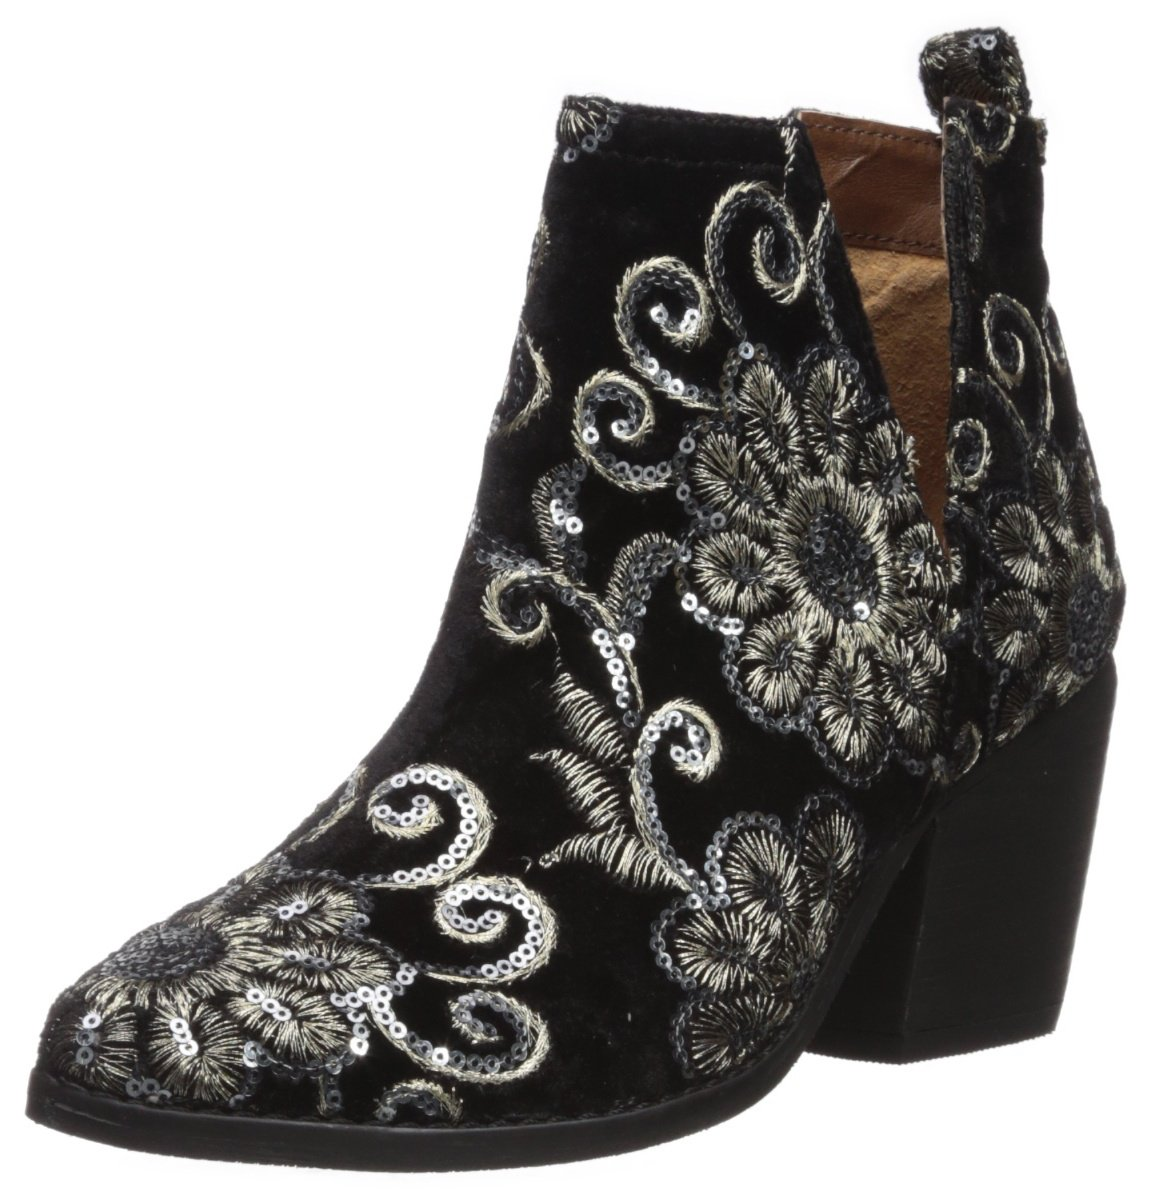 Naughty Monkey Women's Seleni Ankle Boot B075FQ4LRT 7 B(M) US|Black